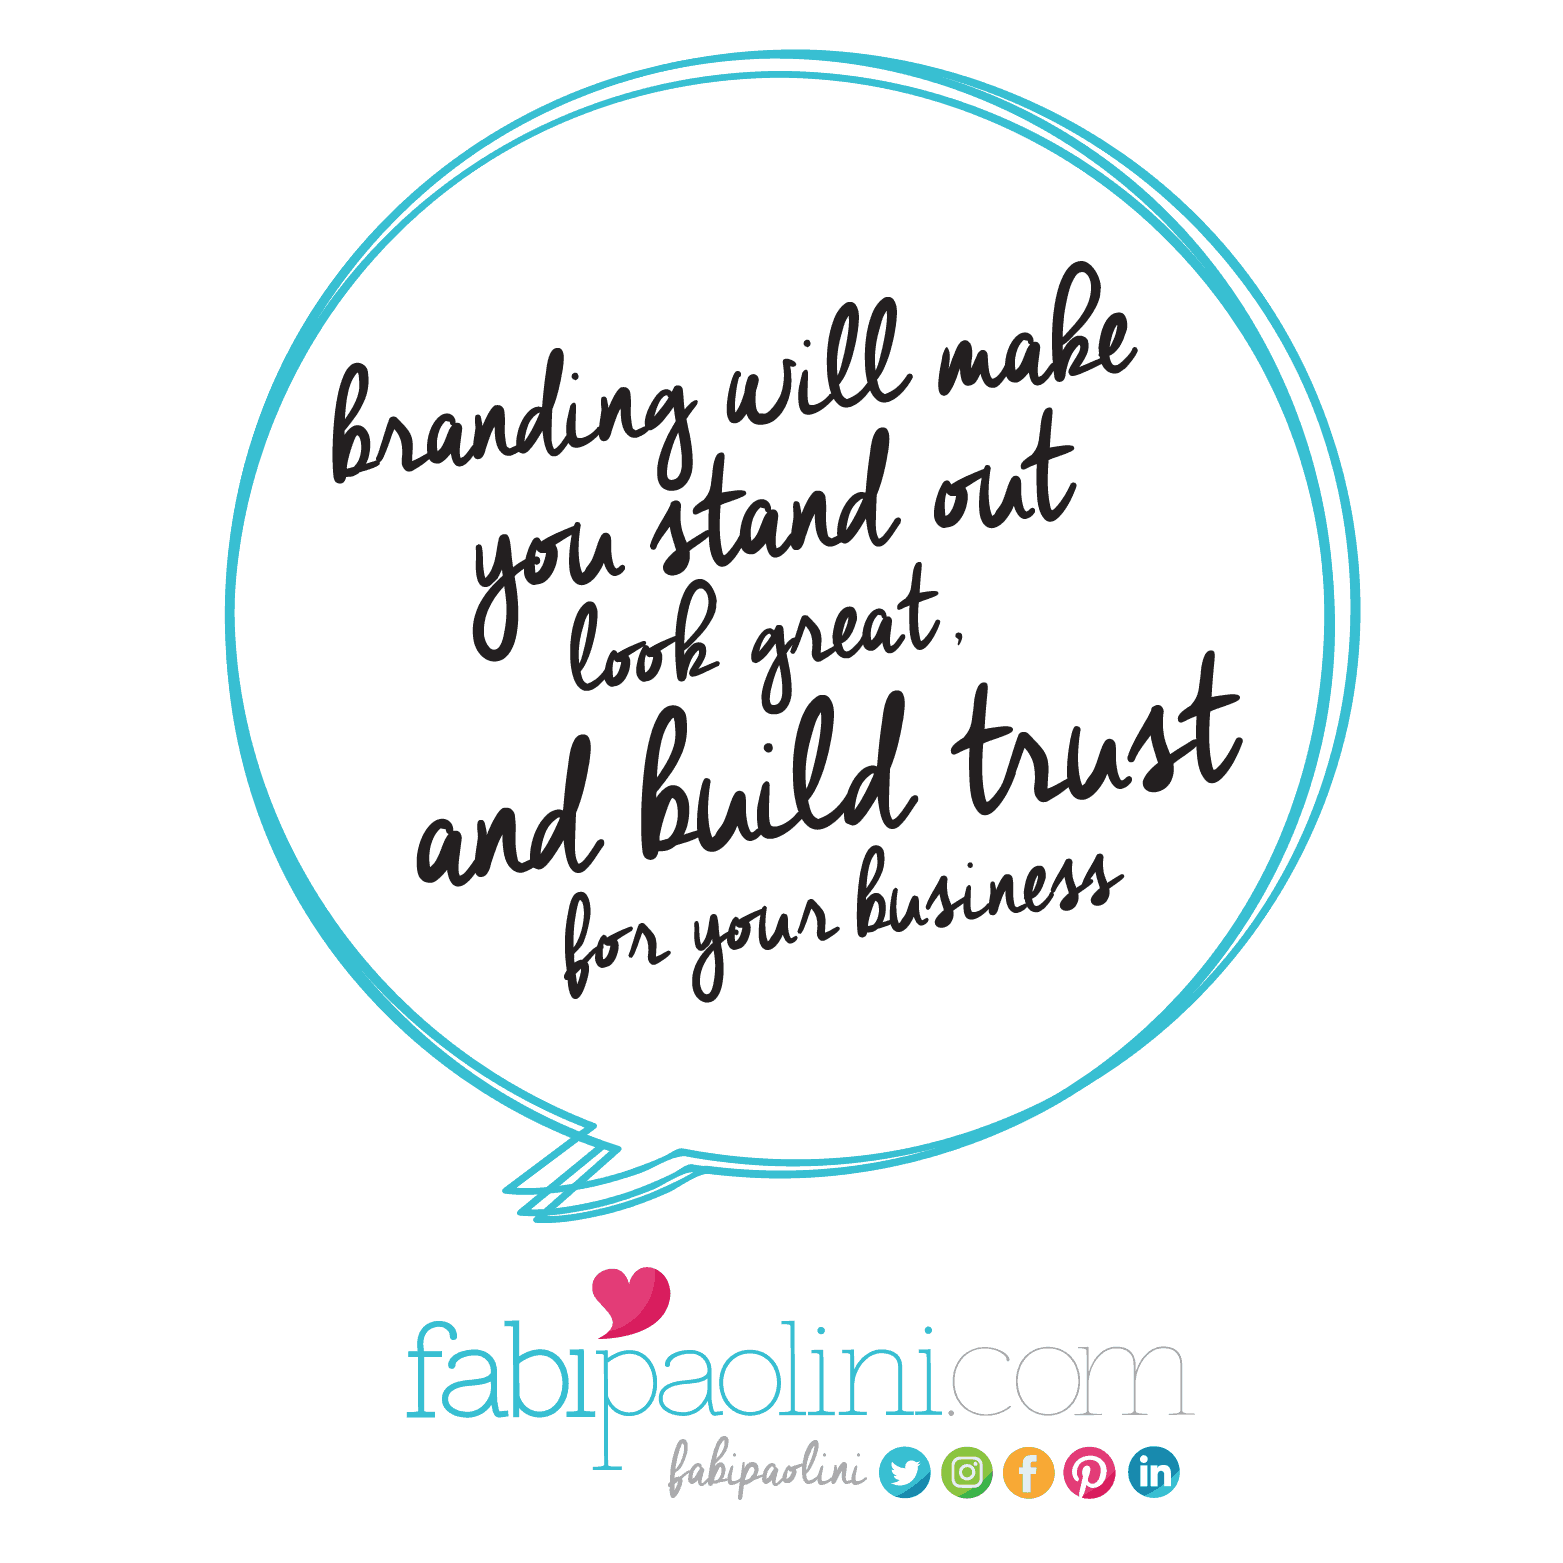 Entrepreneur tips, advice and inspiration: Branding will make you stand out, look great and build trust for your business. Click to read the rest!